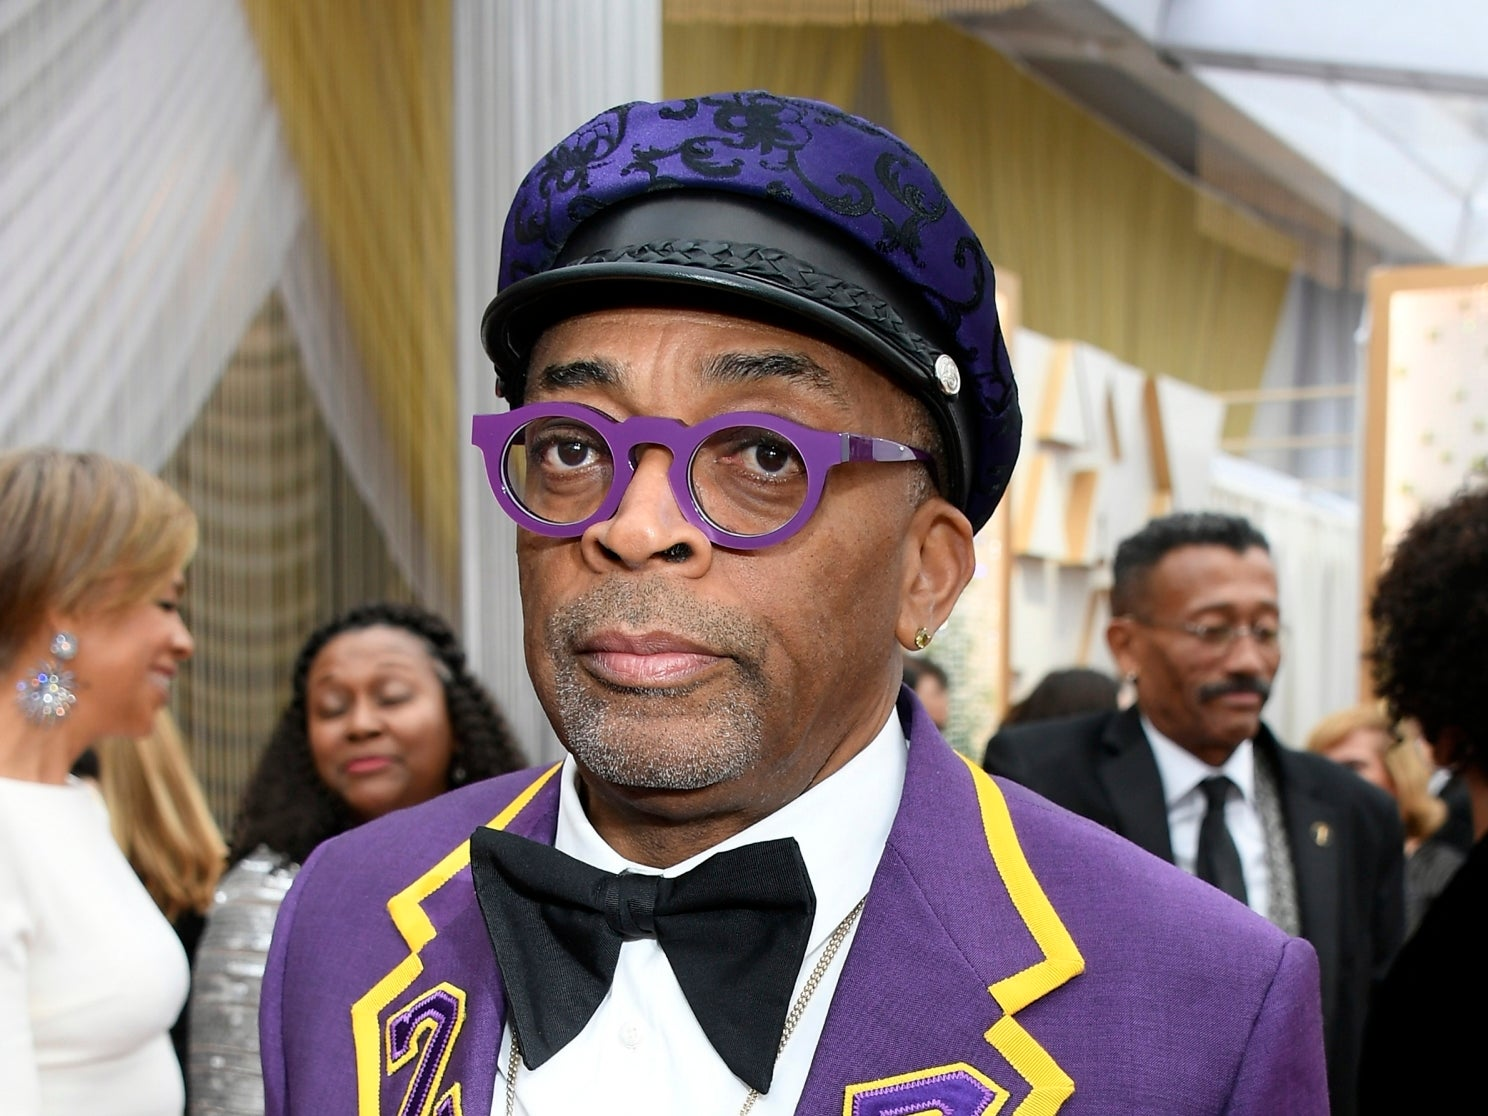 Spike Lee predicts many will be hospitalised and die because of Trump's 'non-scientific' coronavirus claims